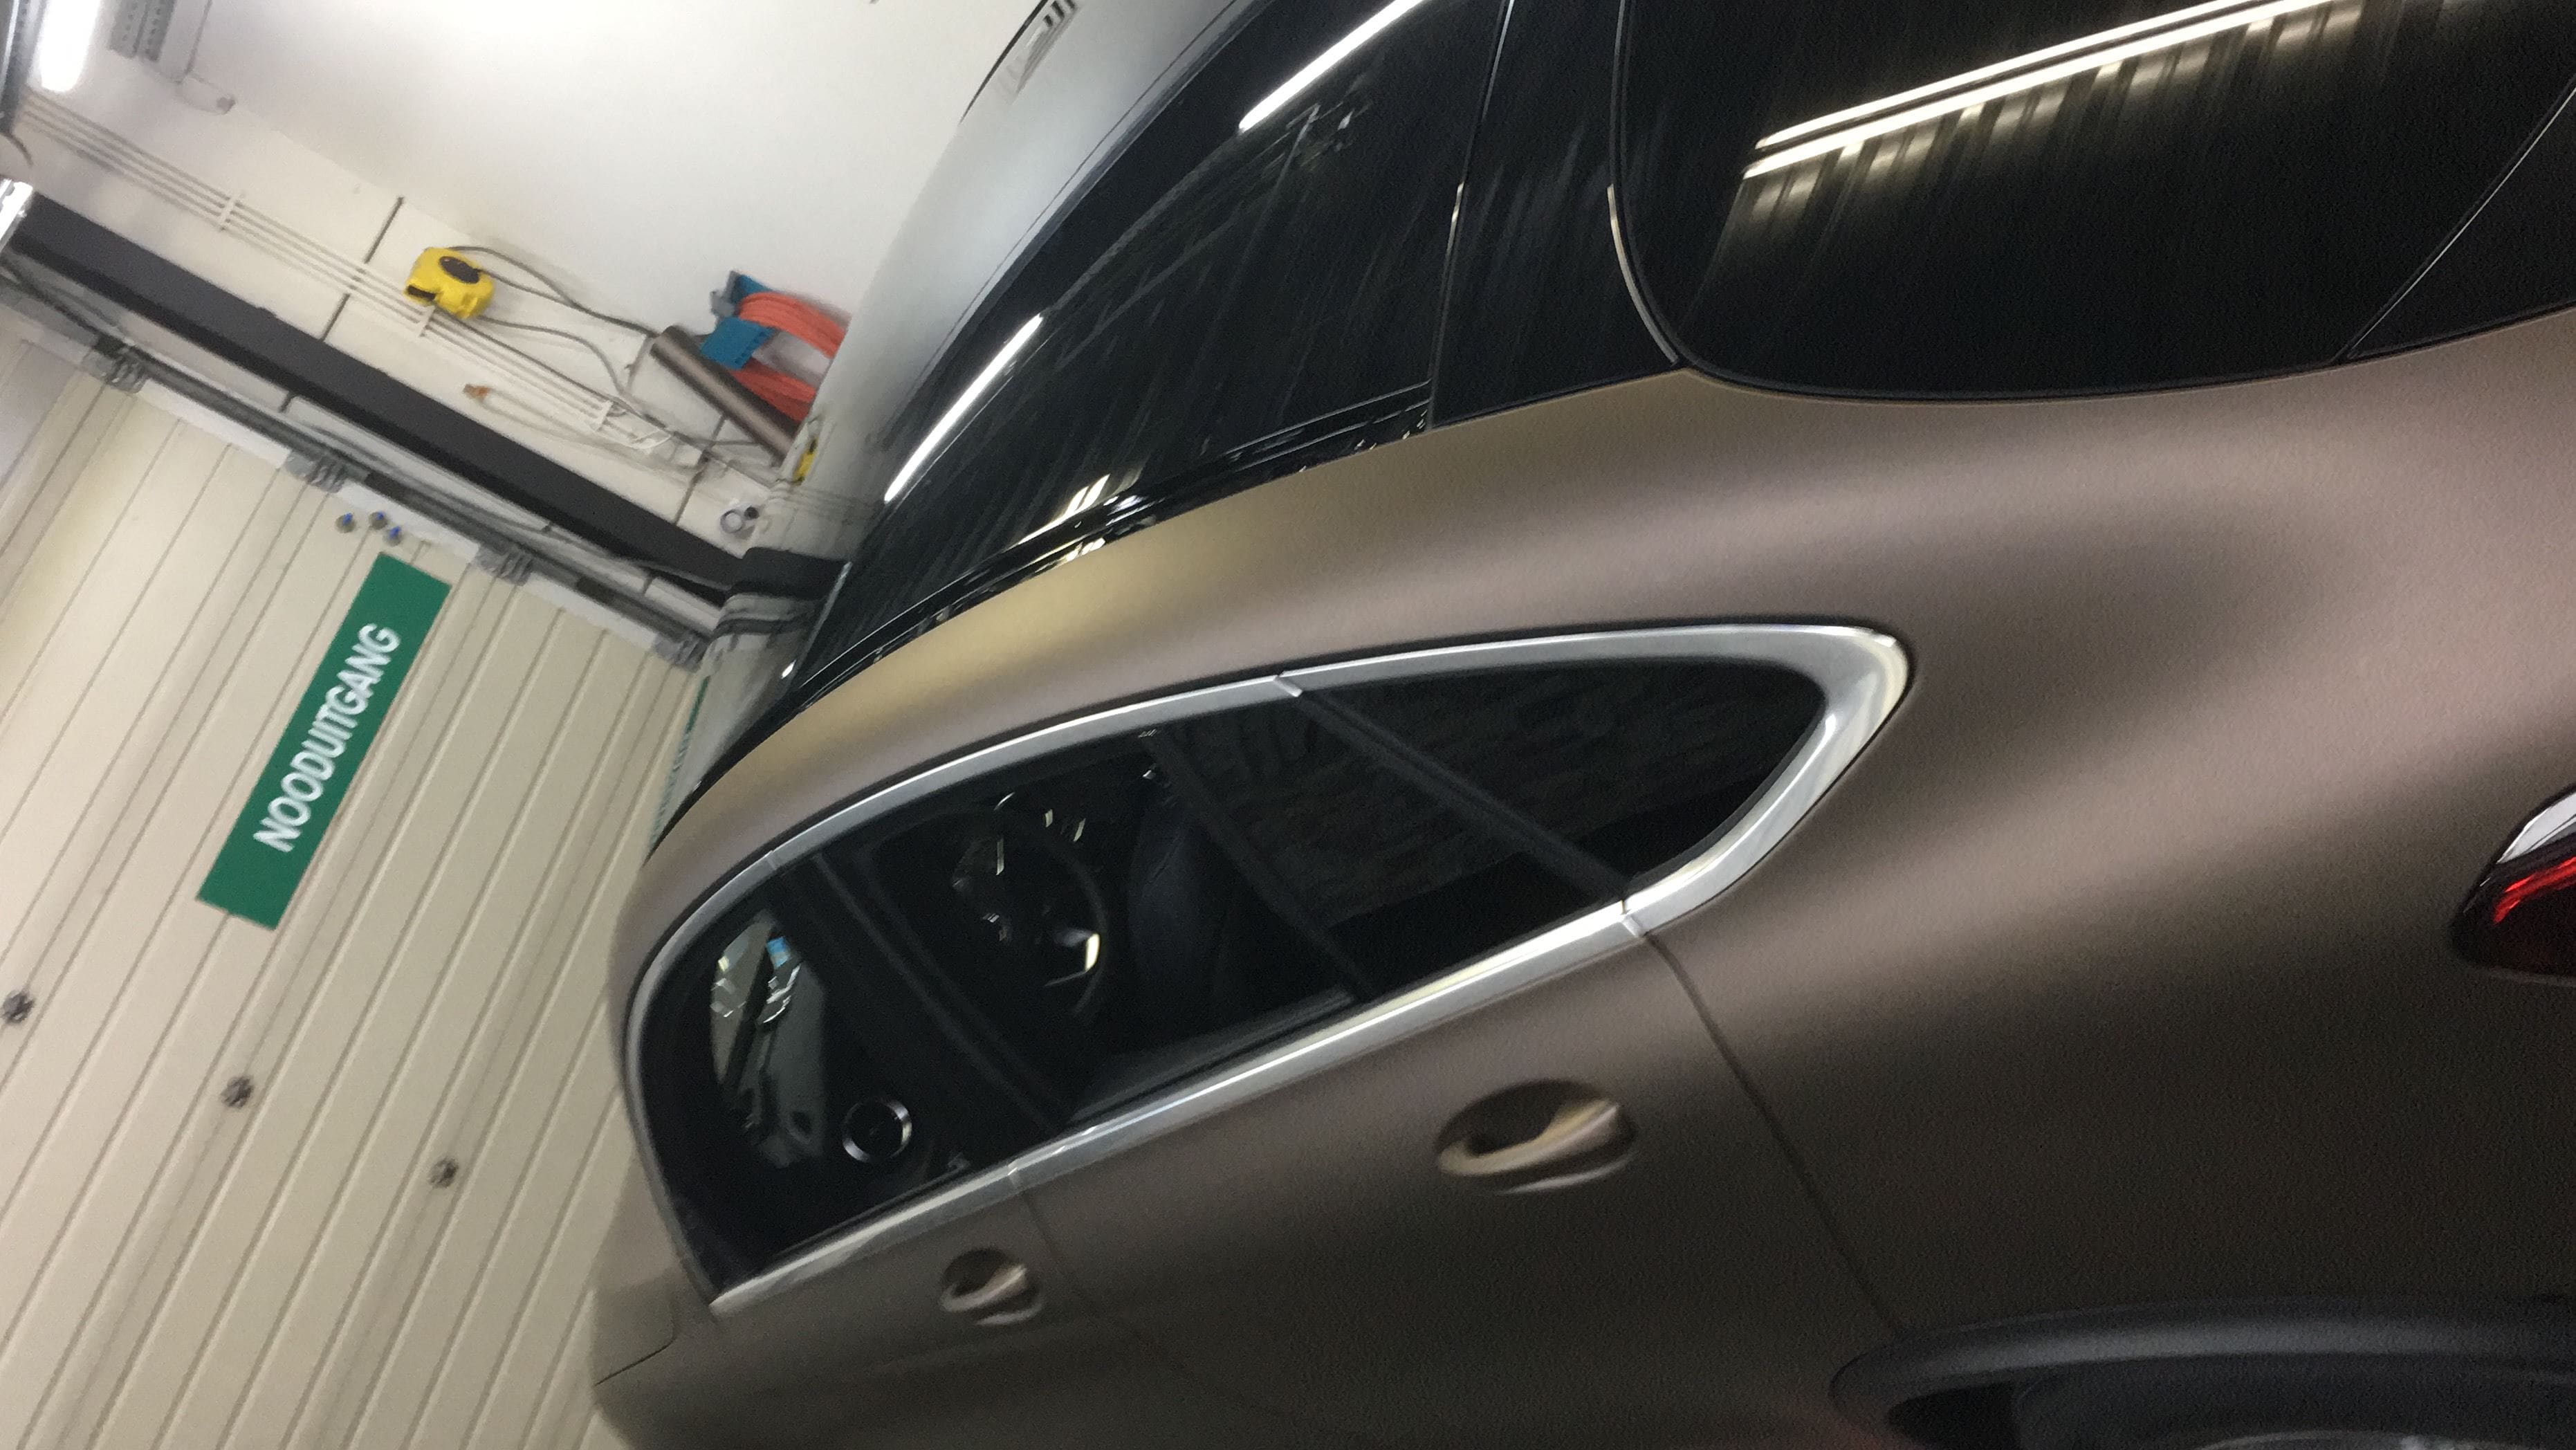 Mercedes GLC Coupe Matte metallic brown, Carwrapping door Wrapmyride.nu Foto-nr:9378, ©2020